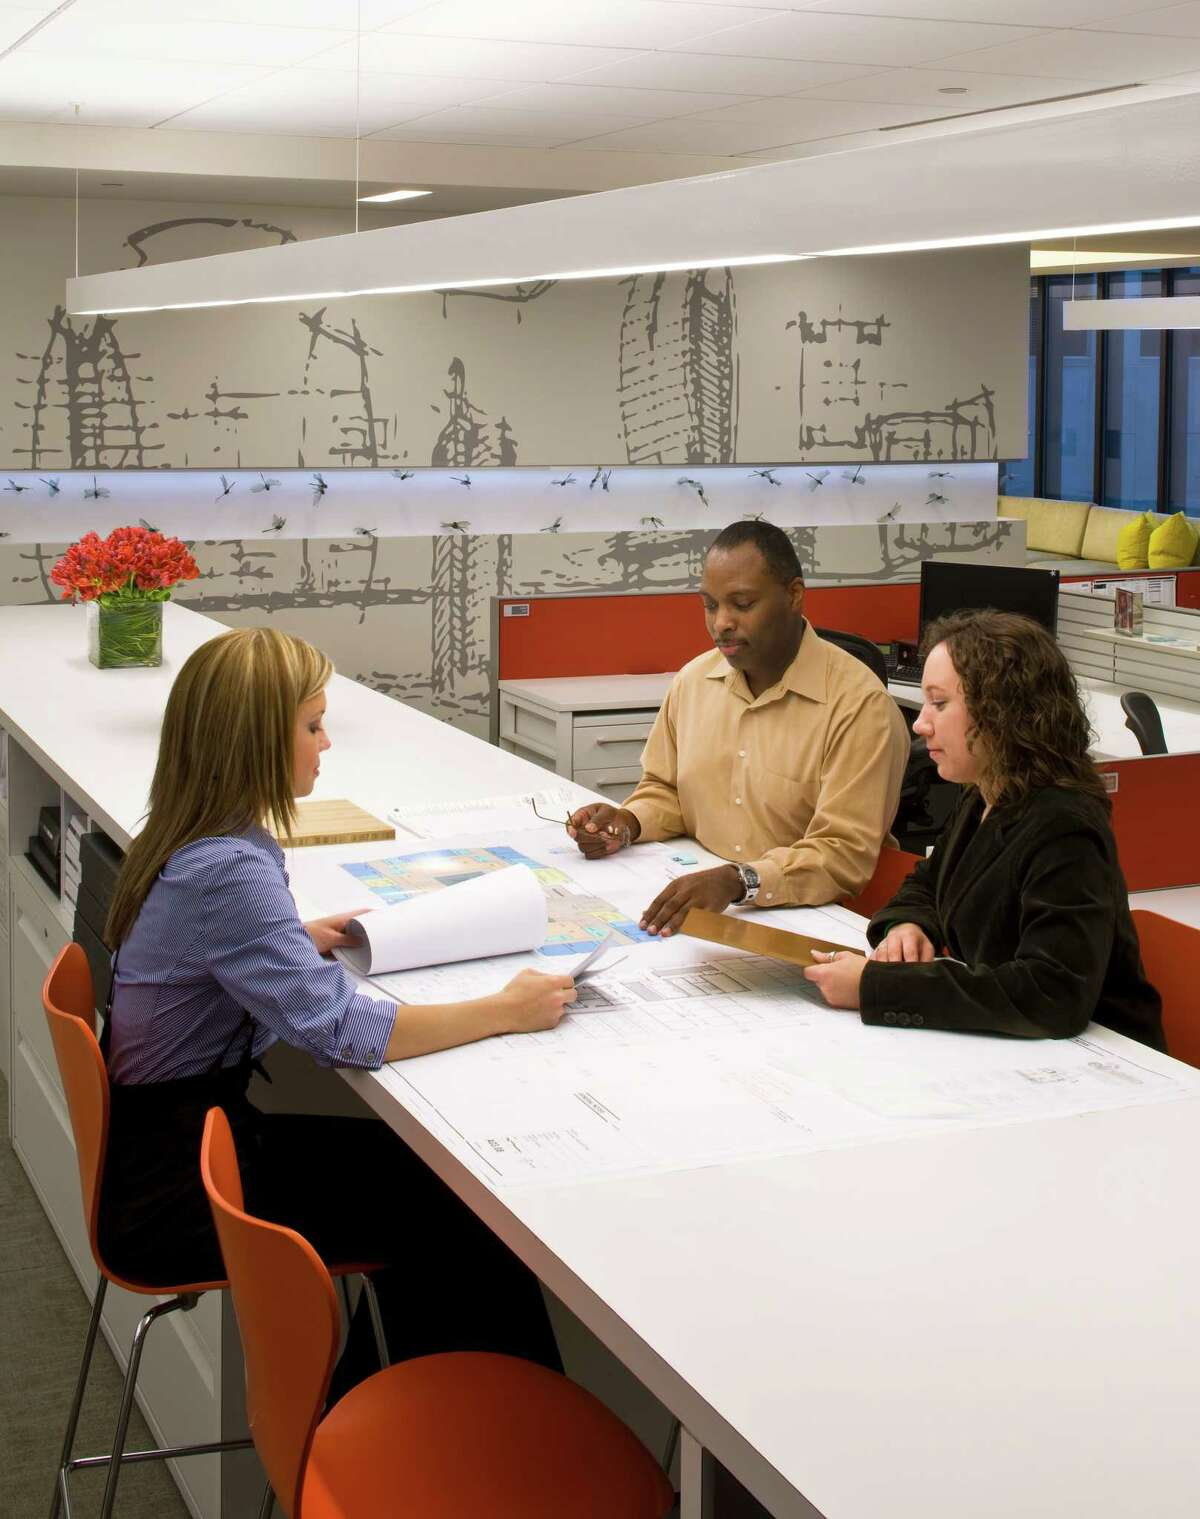 Employees review architectural plans in Gensler's Houston office. The firm was named as one of Houston's Top Workplaces.